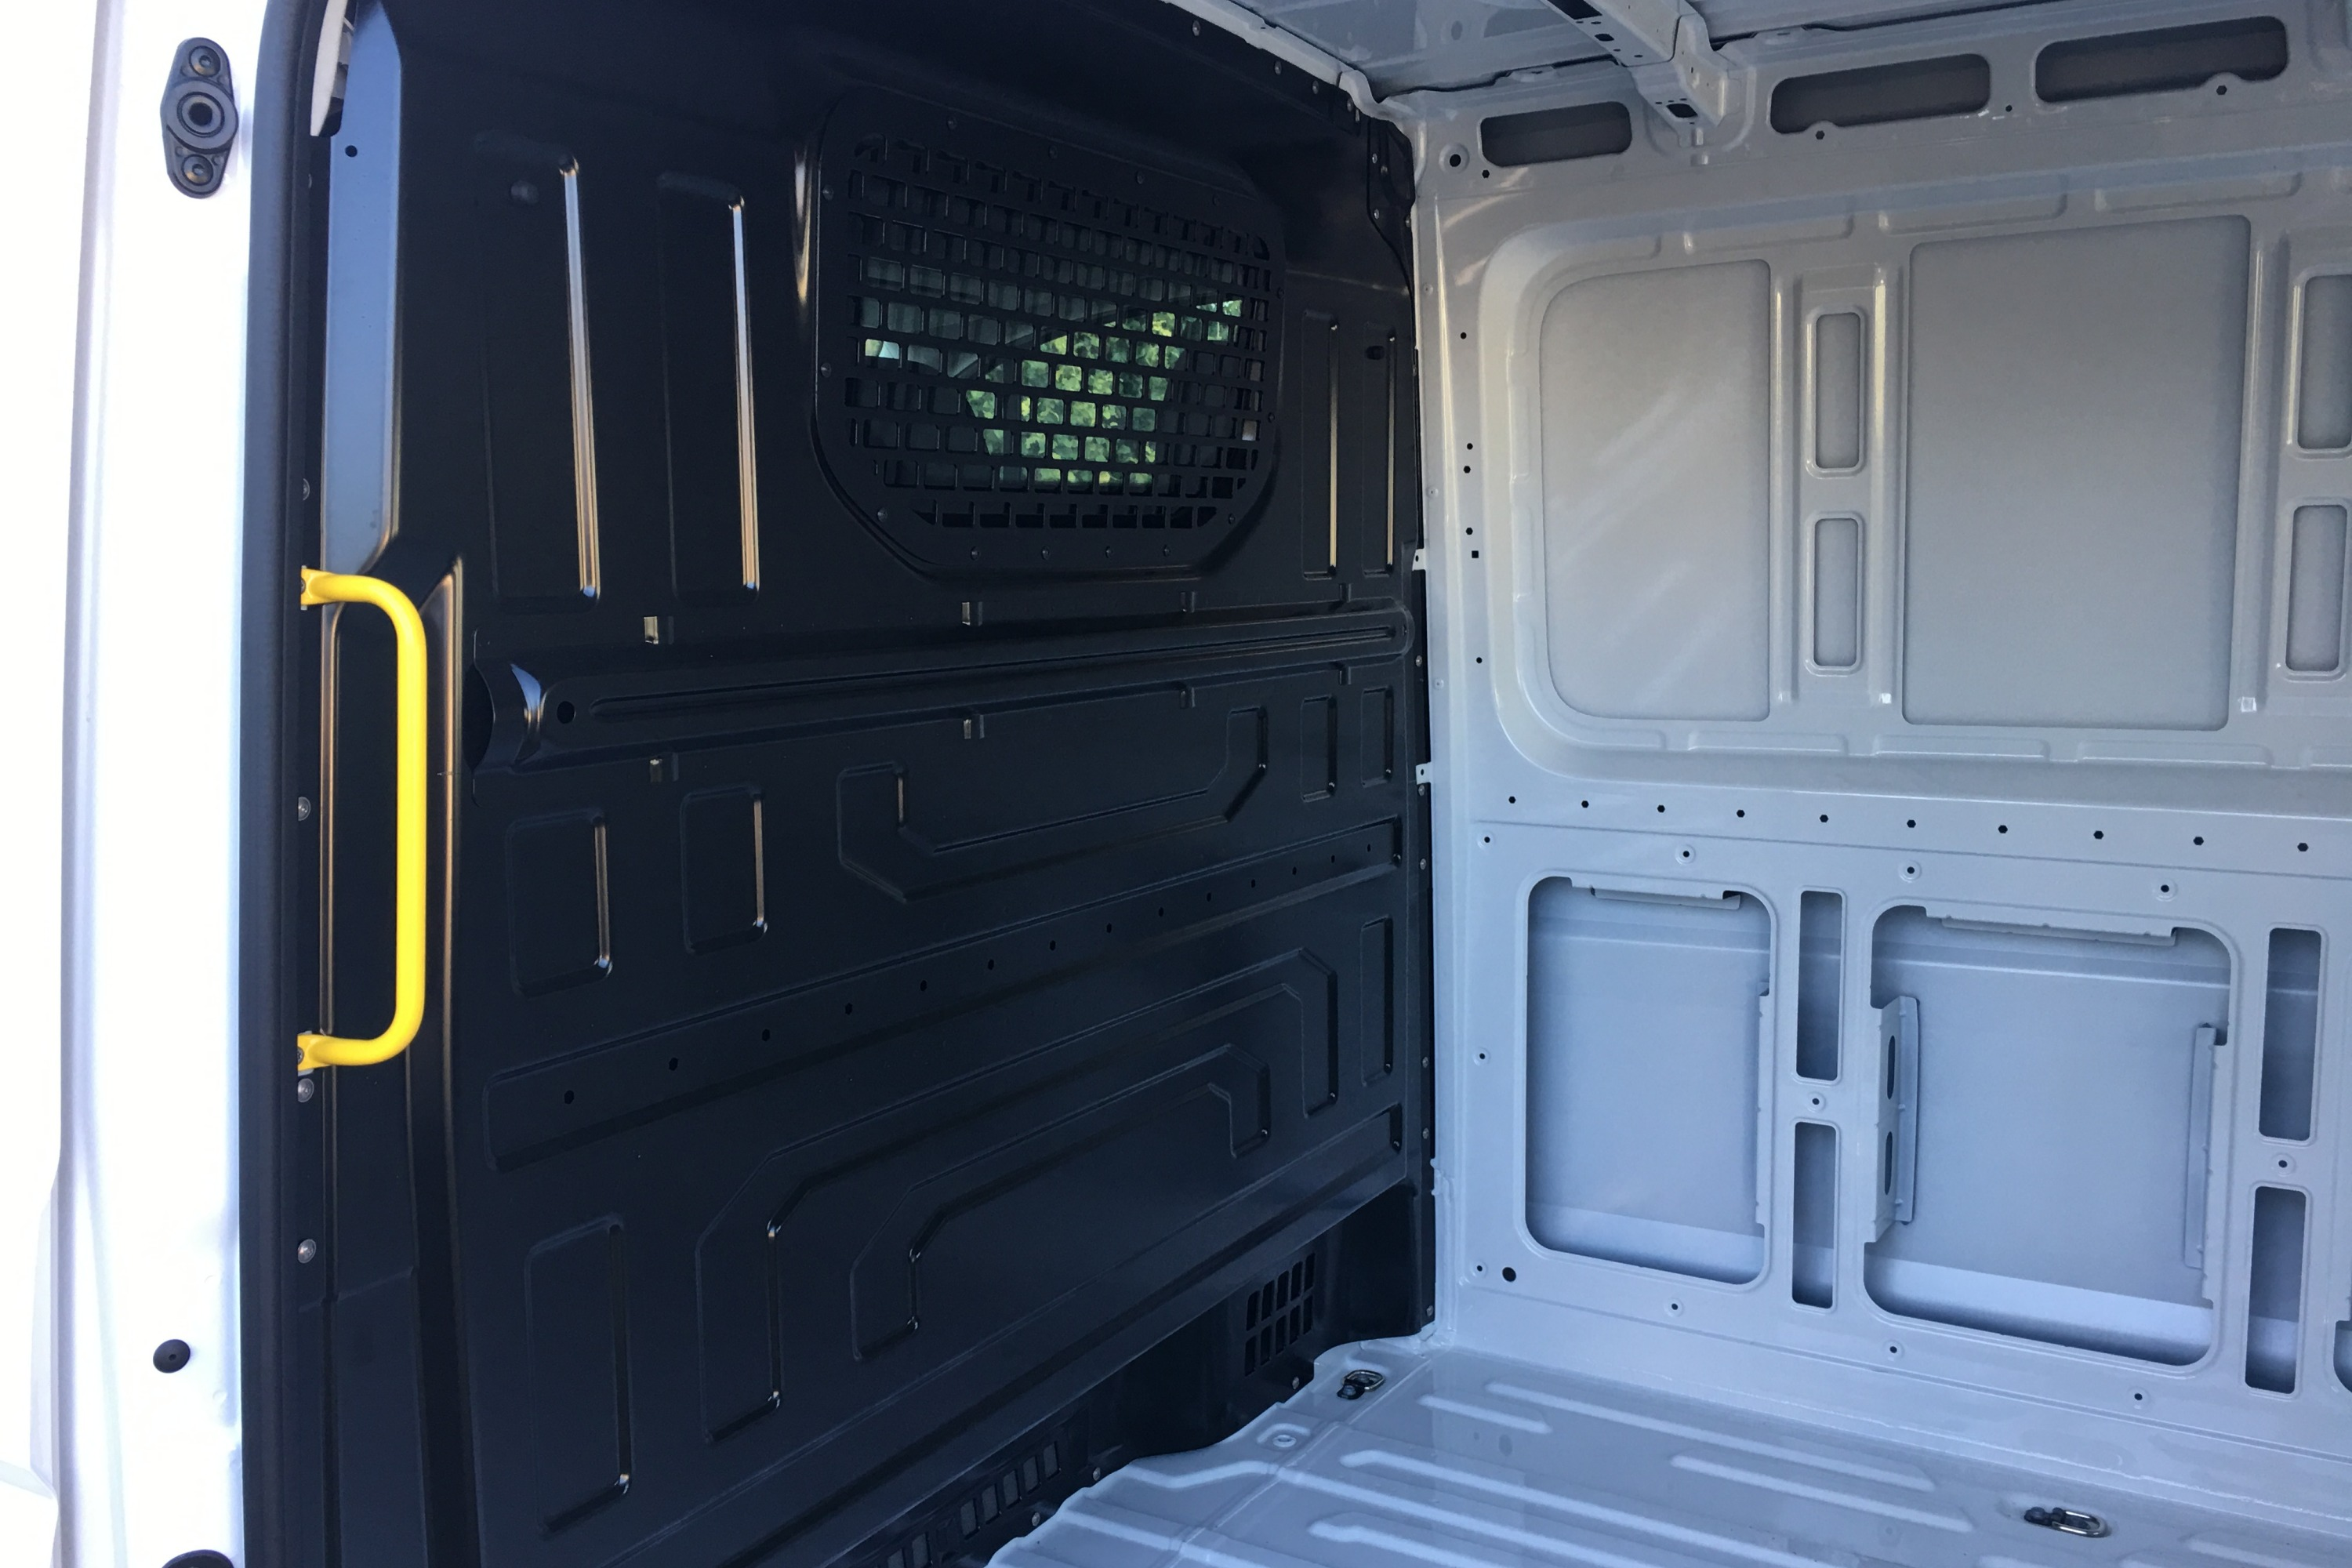 2019 VW Crafter 4MOTION 4 rear seperator panel